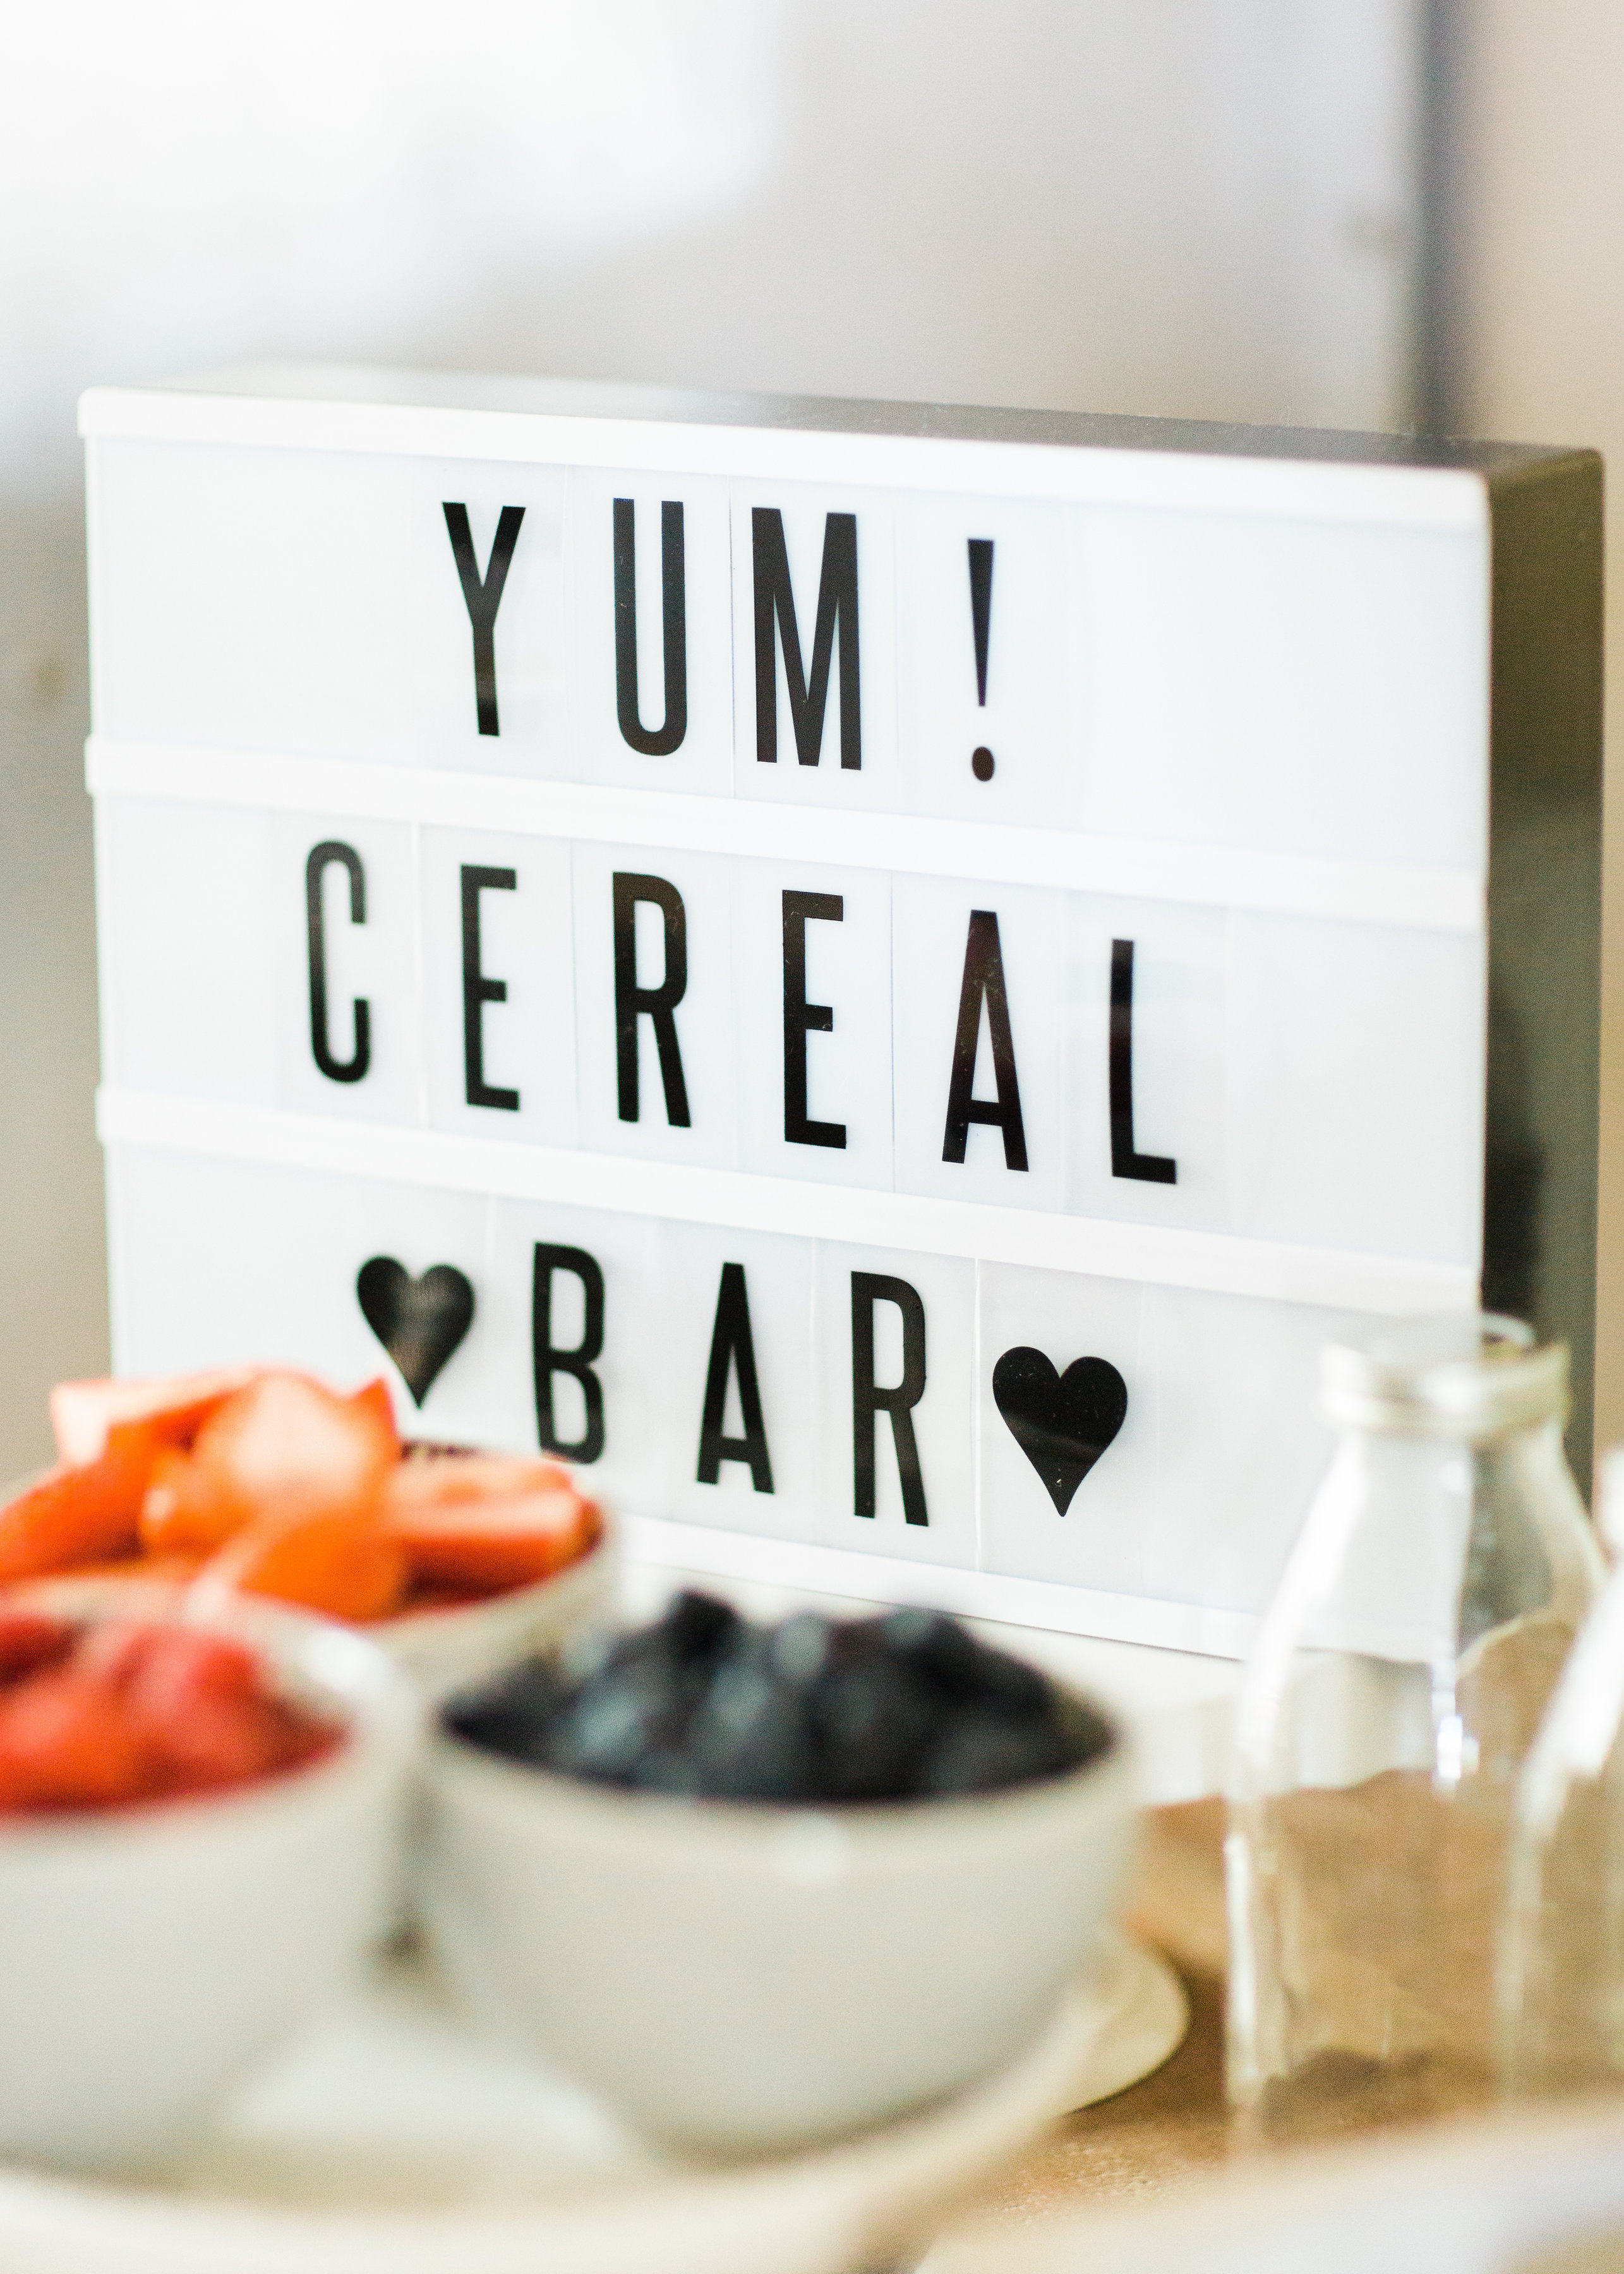 Looking for a unique and easy party dessert station? We're showing you how to put together a DIY retro cereal bar; perfect for a festive and memorable brunch, throwback party, pajama-themed soirée, or sleepover for your kids and their friends! Click through for the details. #brunch #brunchideas #cerealbar #cerealstation #party #partyideas #sleepoverparty #pajamaparty | glitterinc.com | @glitterinc